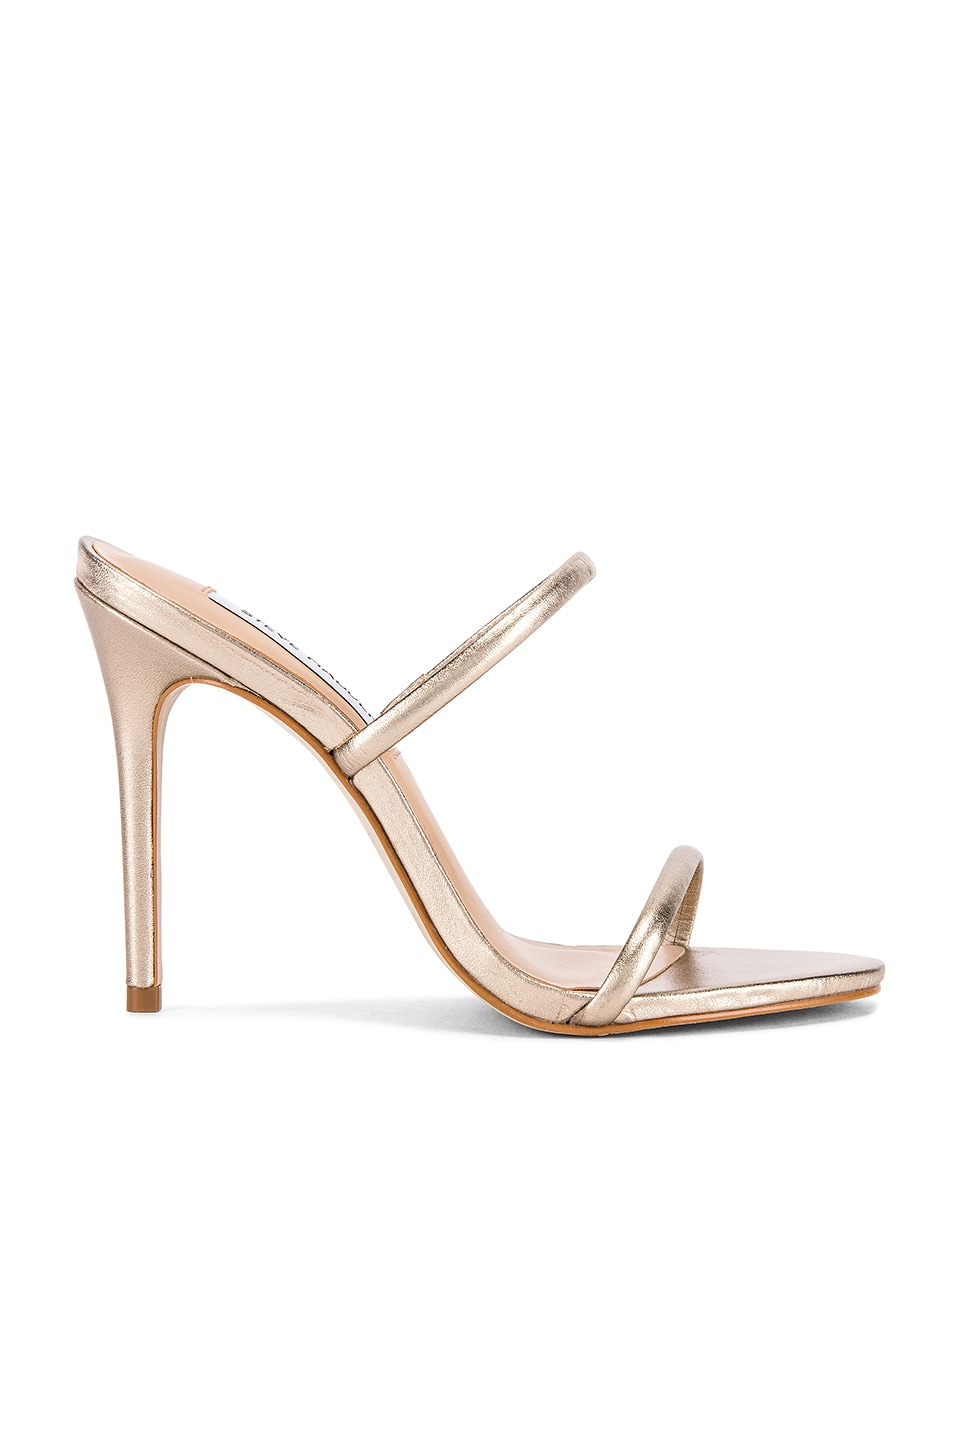 Steve Madden Mina Mule in Light Gold